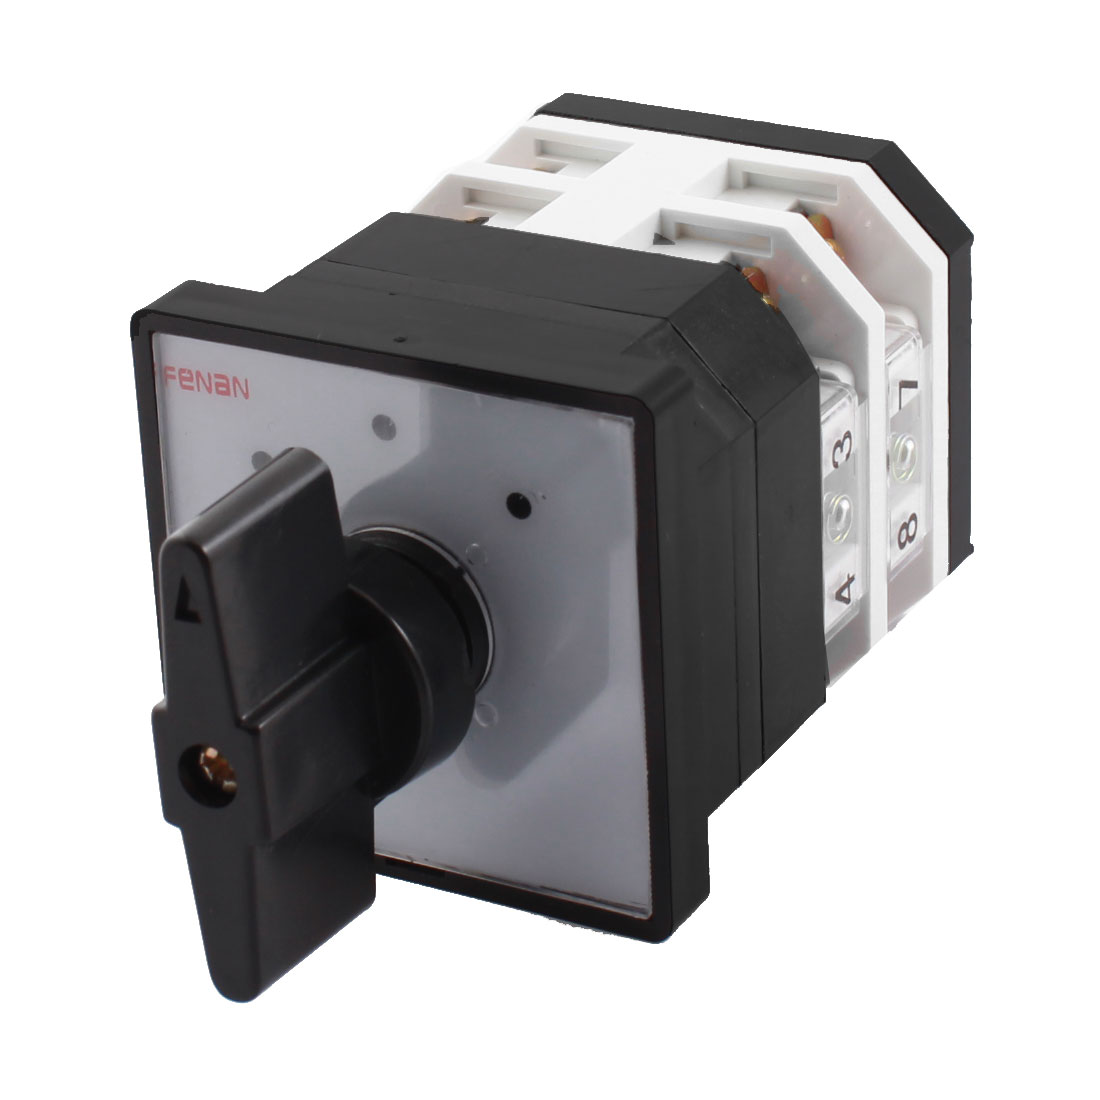 LW12-16 AC 500V 16A 8 Screw Terminals 3-Position 2-Pole Panel Mounting Rotary Cam Changeover Selector Switch